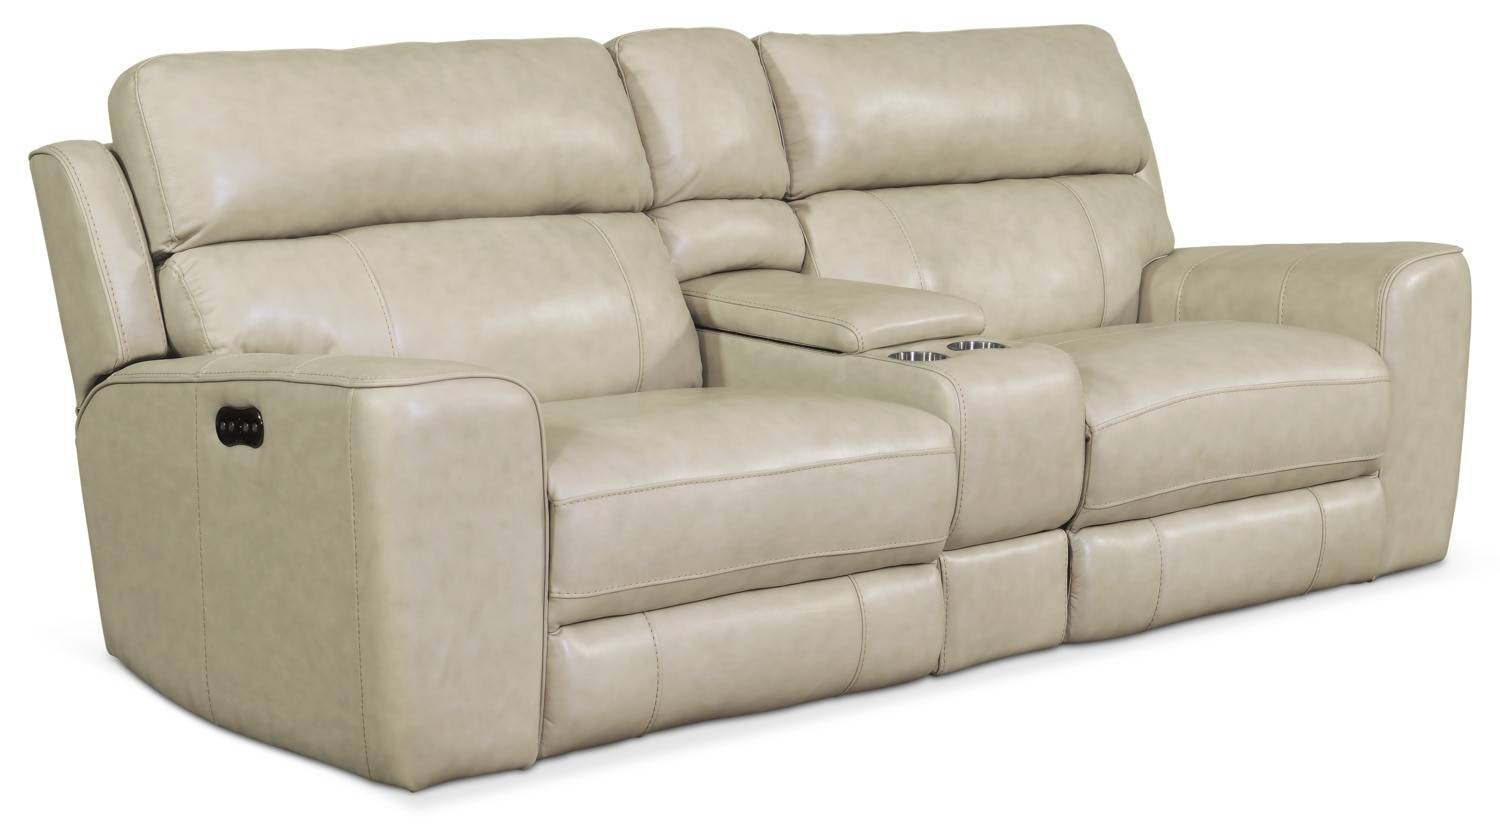 Newport 3-Piece Power Reclining Sofa - Cream | American Signature for Newport Sofas (Image 15 of 30)